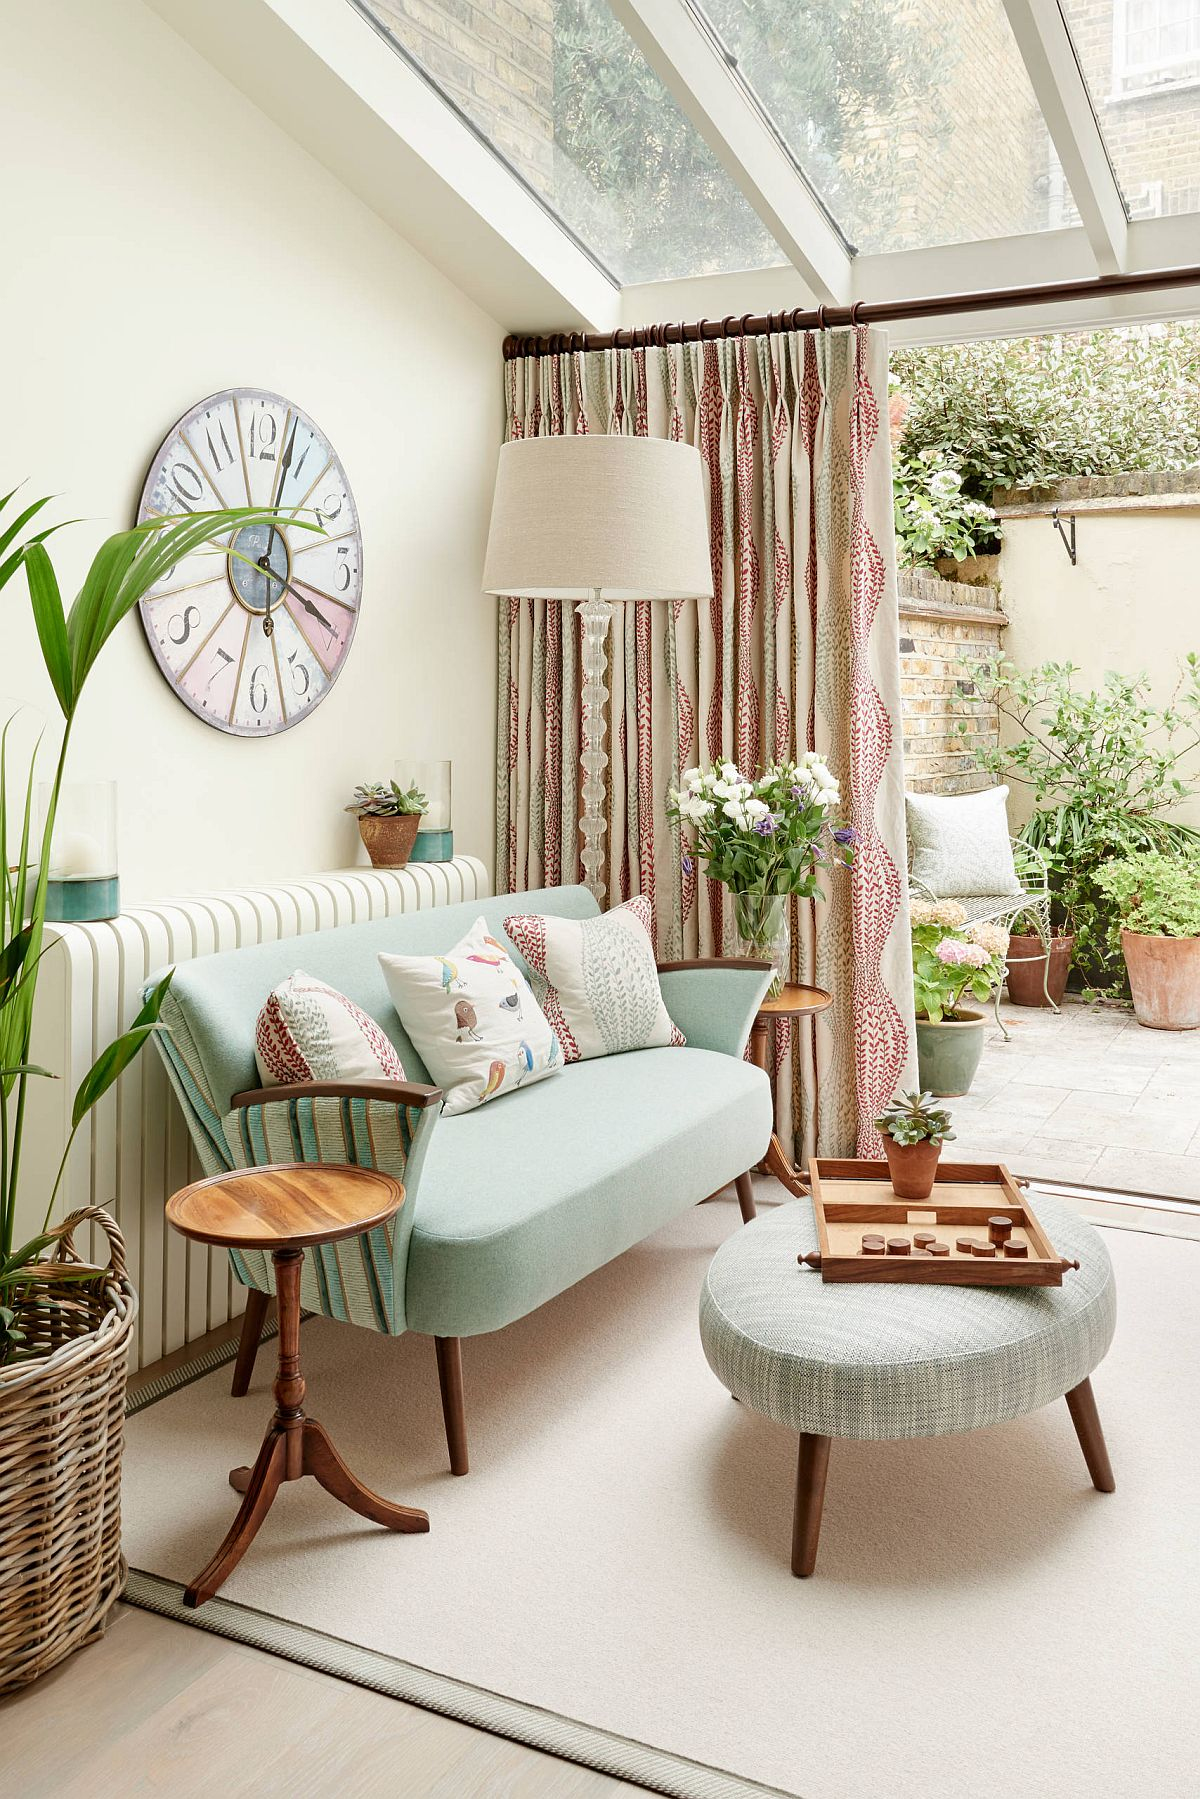 Sunroom in white with decor in pastel hue combines modernity with eclectic charm